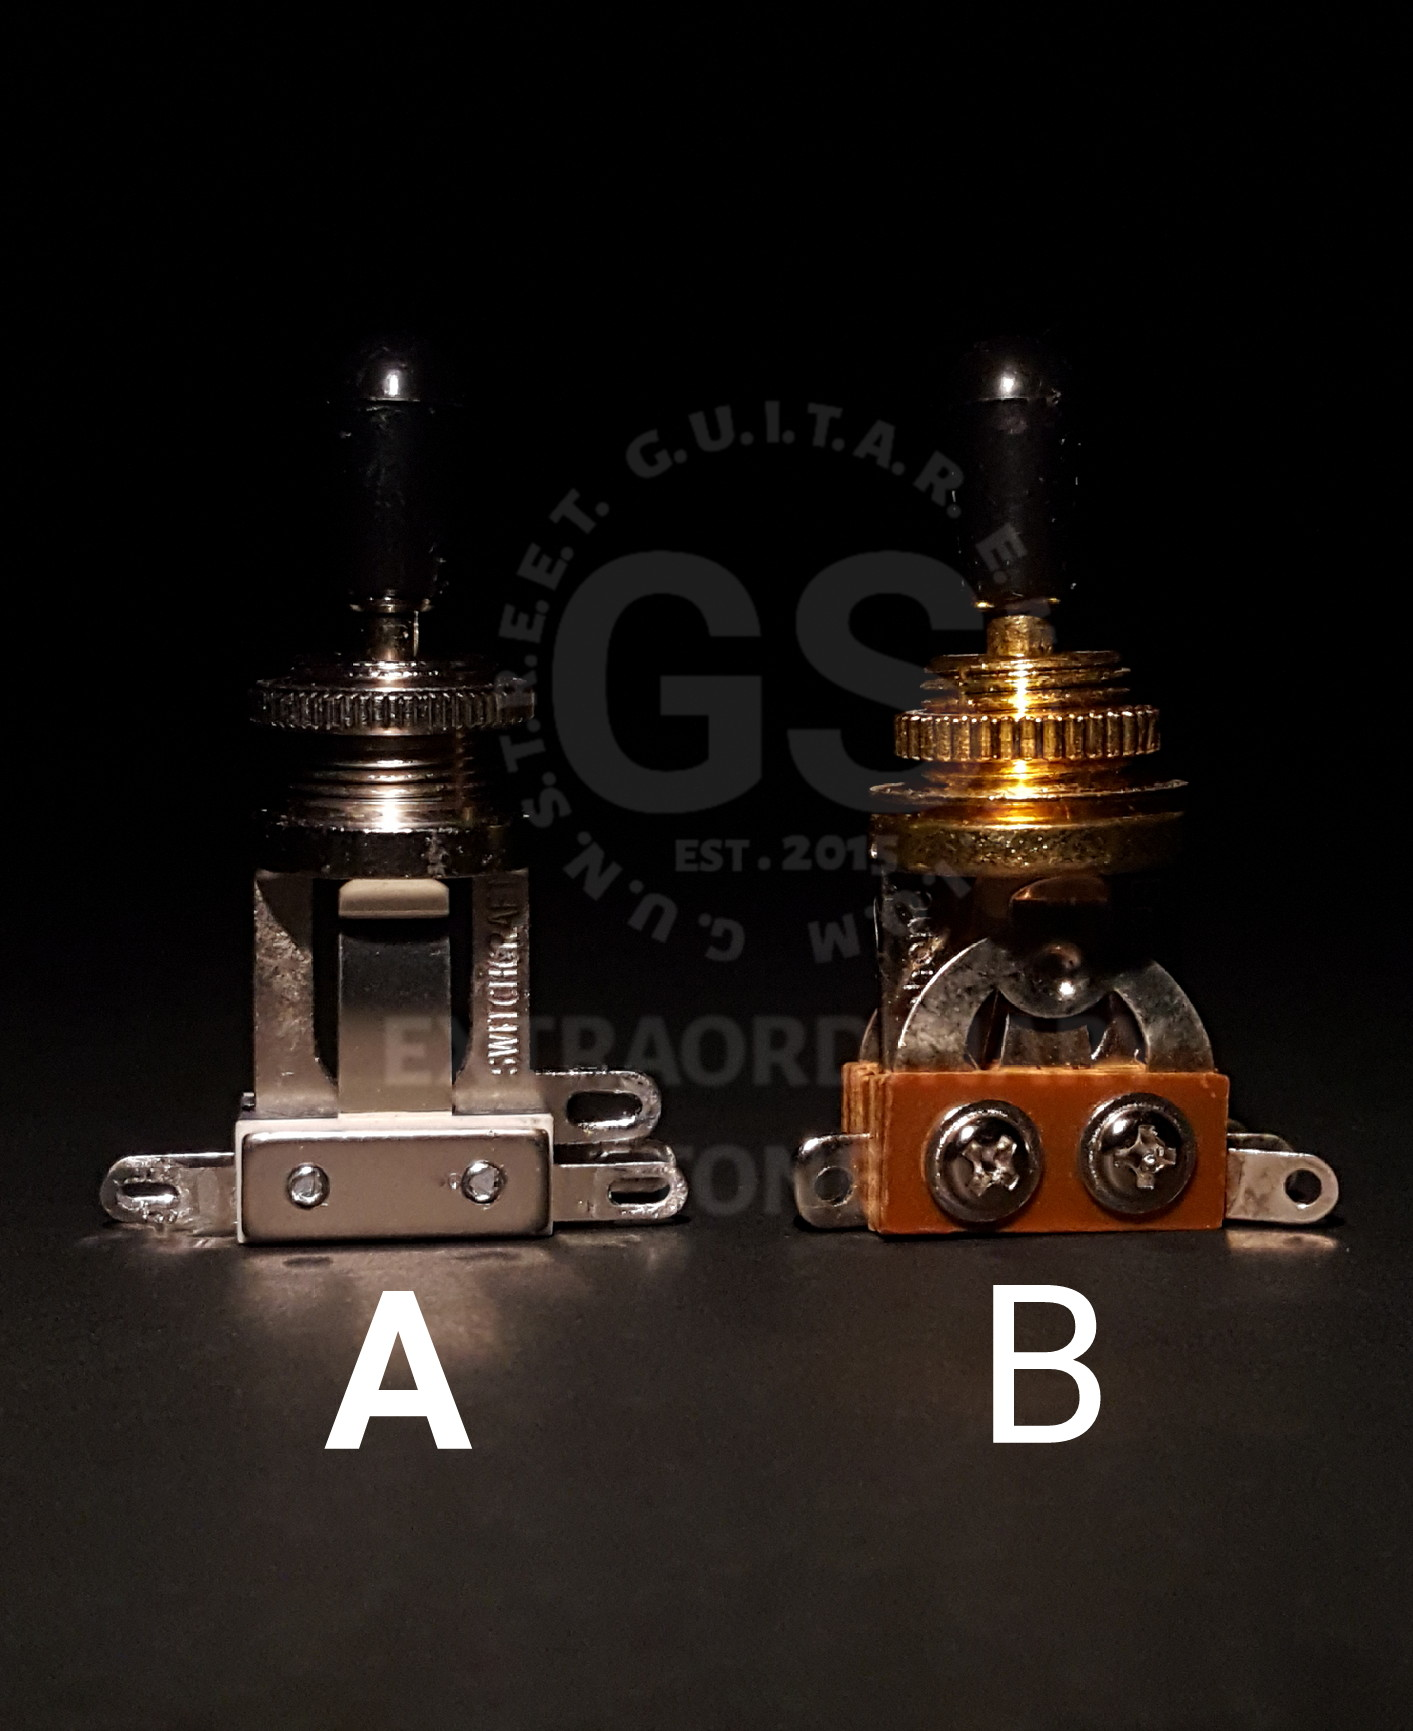 ab compare side switch.jpg